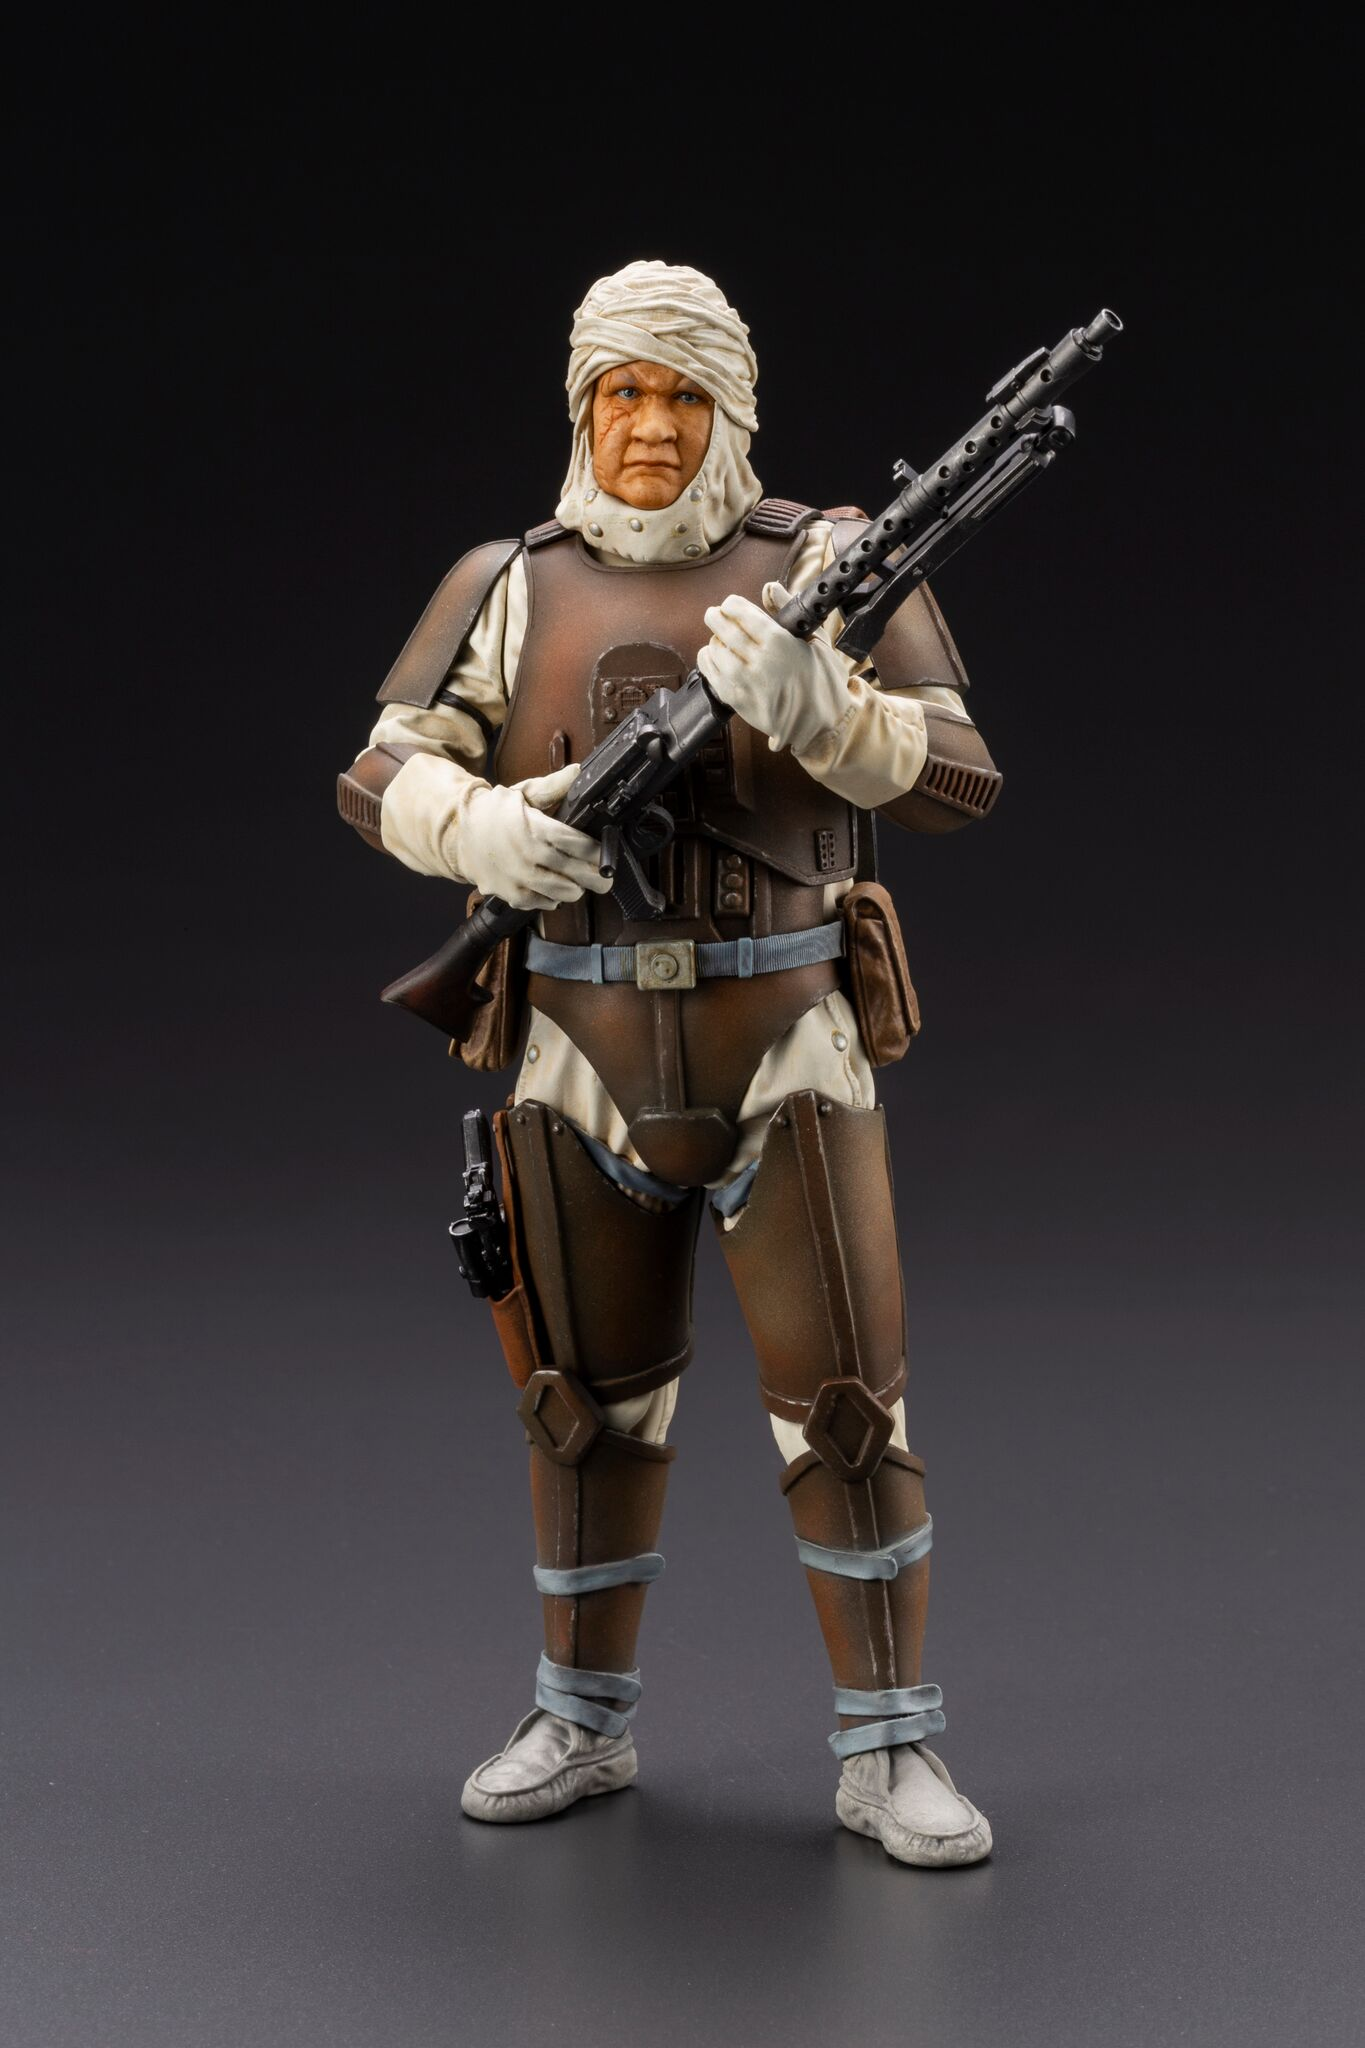 Kotobukiya Star Wars Bounty Hunter Dengar ARTFX+ Statue